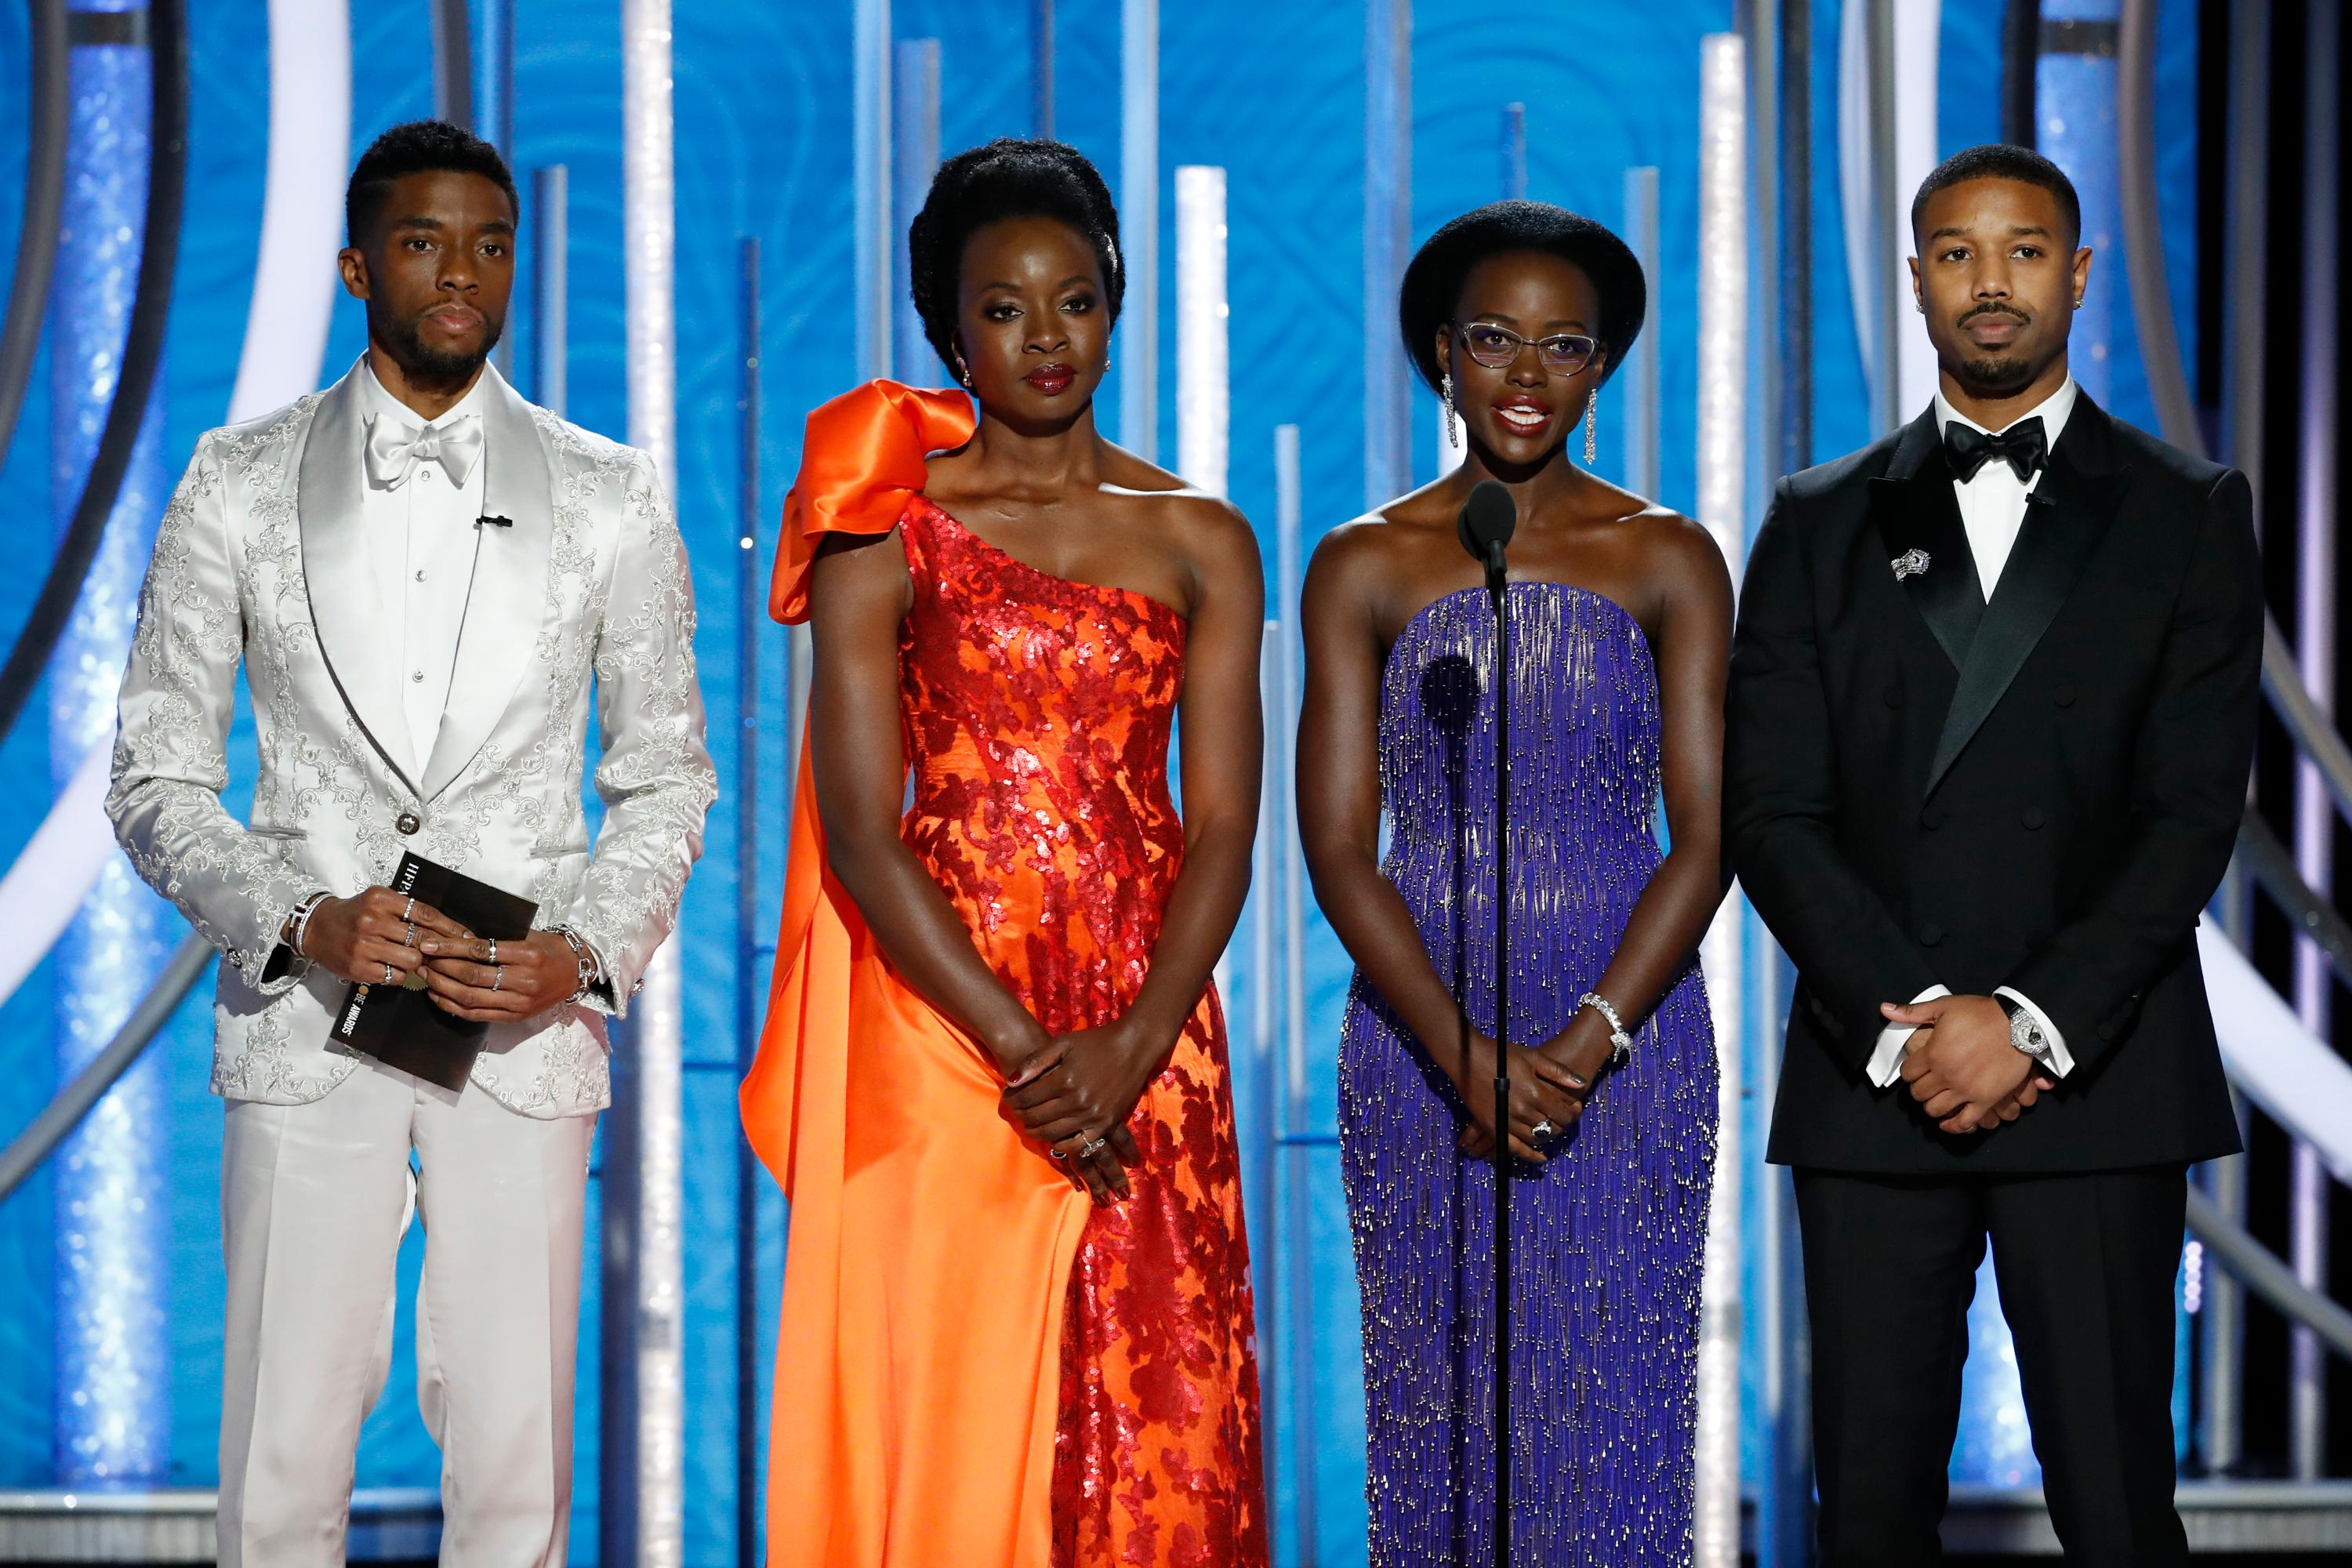 "This image released by NBC shows the cast of ""Black Panther,"" from left, Chadwick Boseman, Danai Gurira, Lupita Nyong'o and Michael B. Jordan presenting the award for best animated feature during the 76th Annual Golden Globe Awards at the Beverly Hilton Hotel, Sunday, Jan. 6, 2019 in Beverly Hills, Calif. (Paul Drinkwater/NBC via AP)"